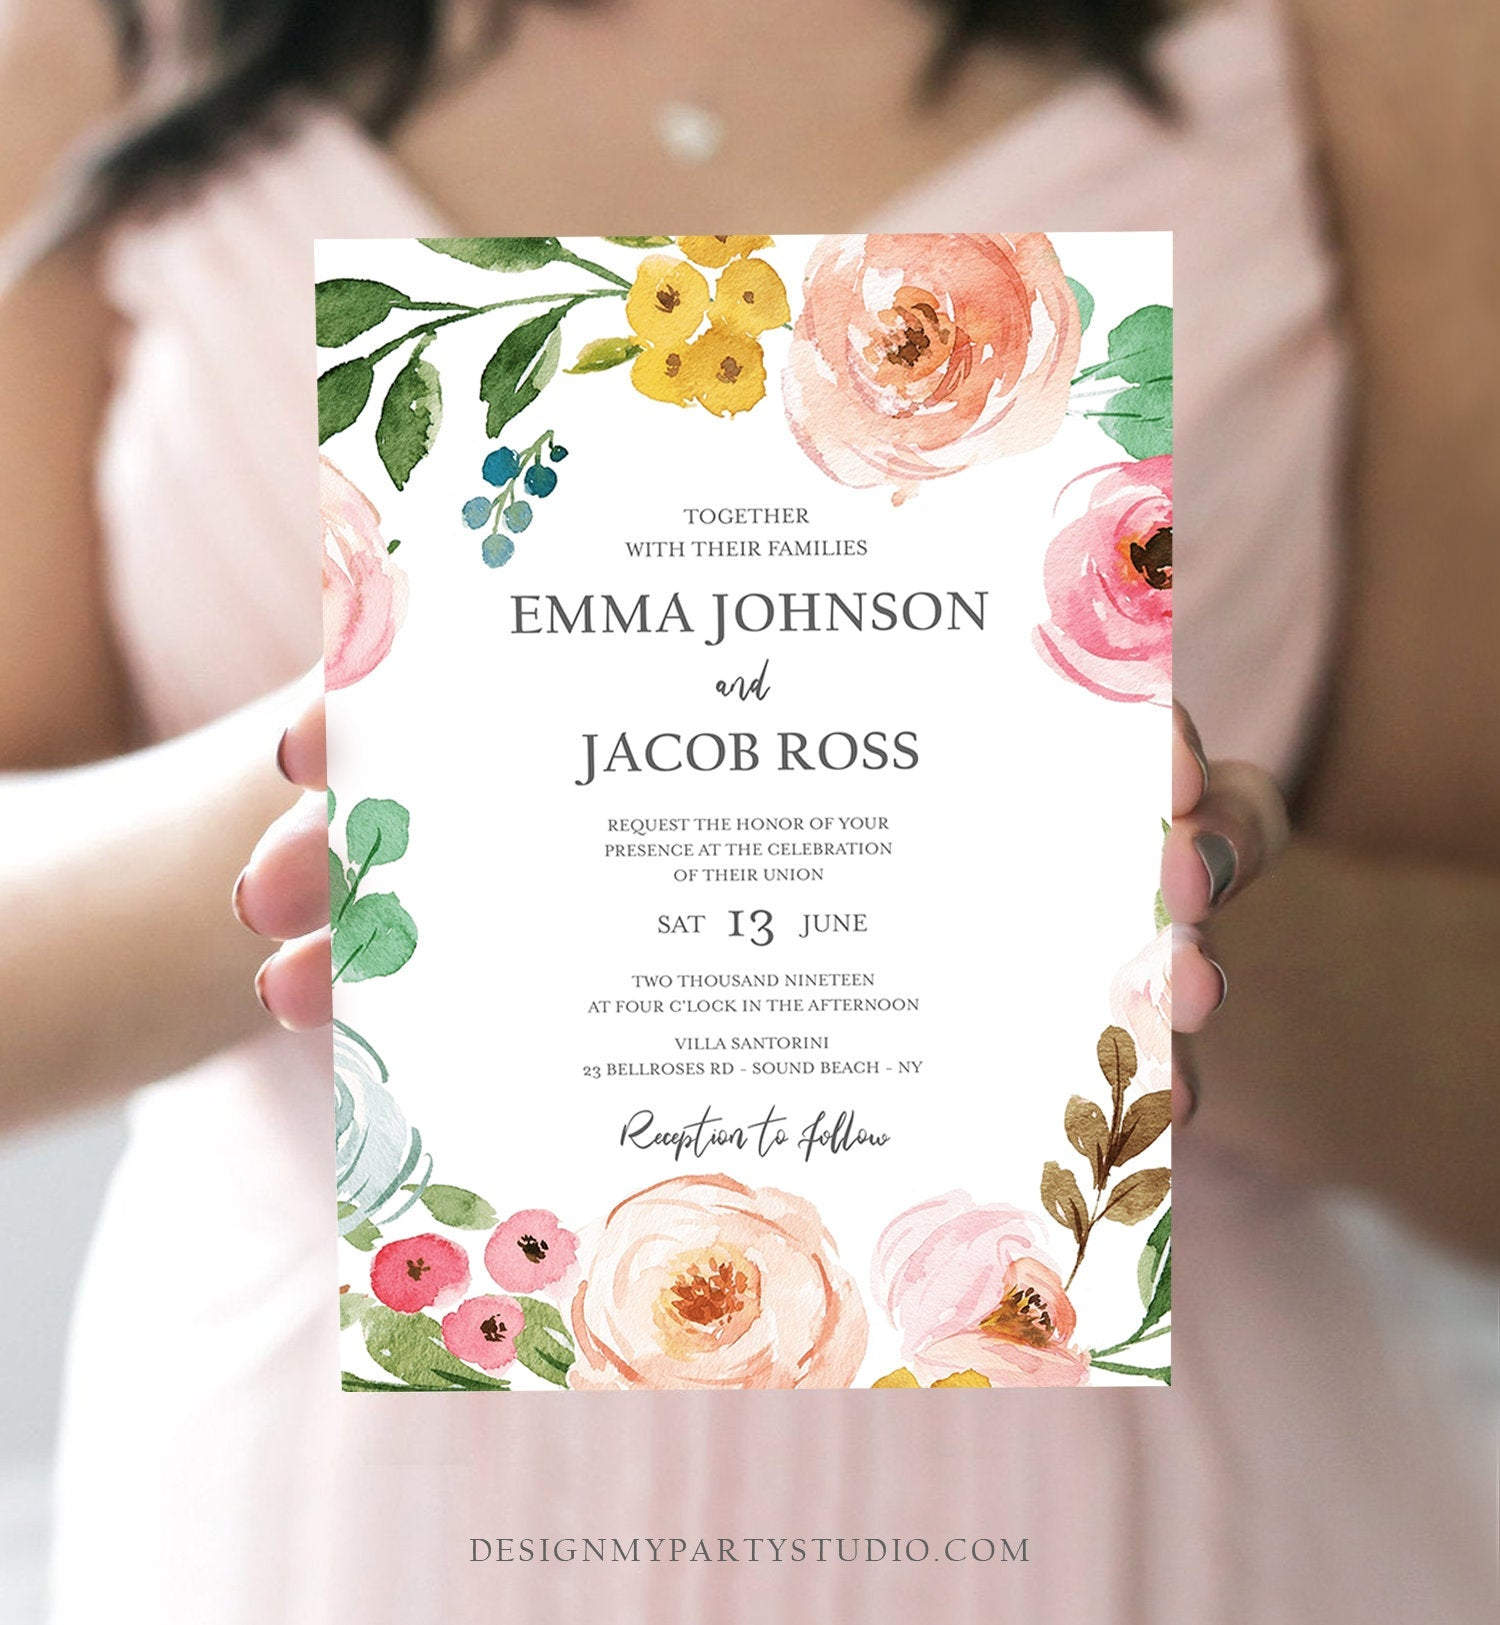 Editable Floral Wedding Invitation Bohemian Pink Floral Greenery Botanical Flowers Boho Vintage Download Corjl Template Printable 0166